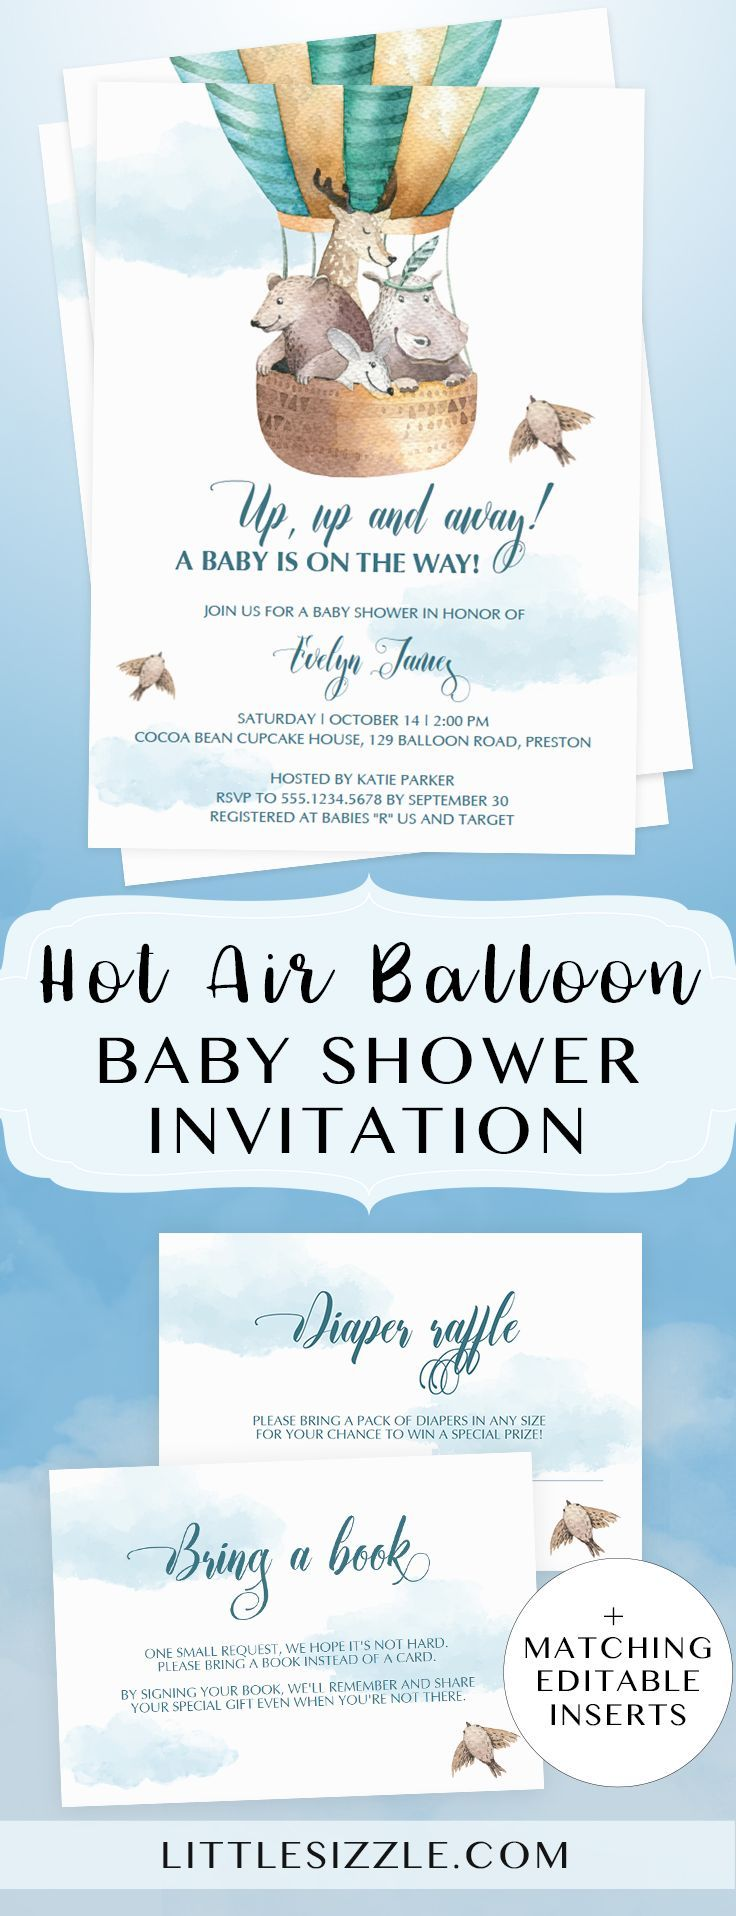 Hot air balloon baby shower invitation templates by LittleSizzle. Create your own baby shower invites for a hot air balloon themed baby shower. This adorable gender neutral printable invitation will fit your hot air balloon theme perfectly. Include the matching cloud baby shower game cards and bring a book instead of a card printable to complete the look. #babyshowerthemes #babyshowerinvitations #babyshowerideas4u #hotairballoon #genderneutral #DIY #template #printable